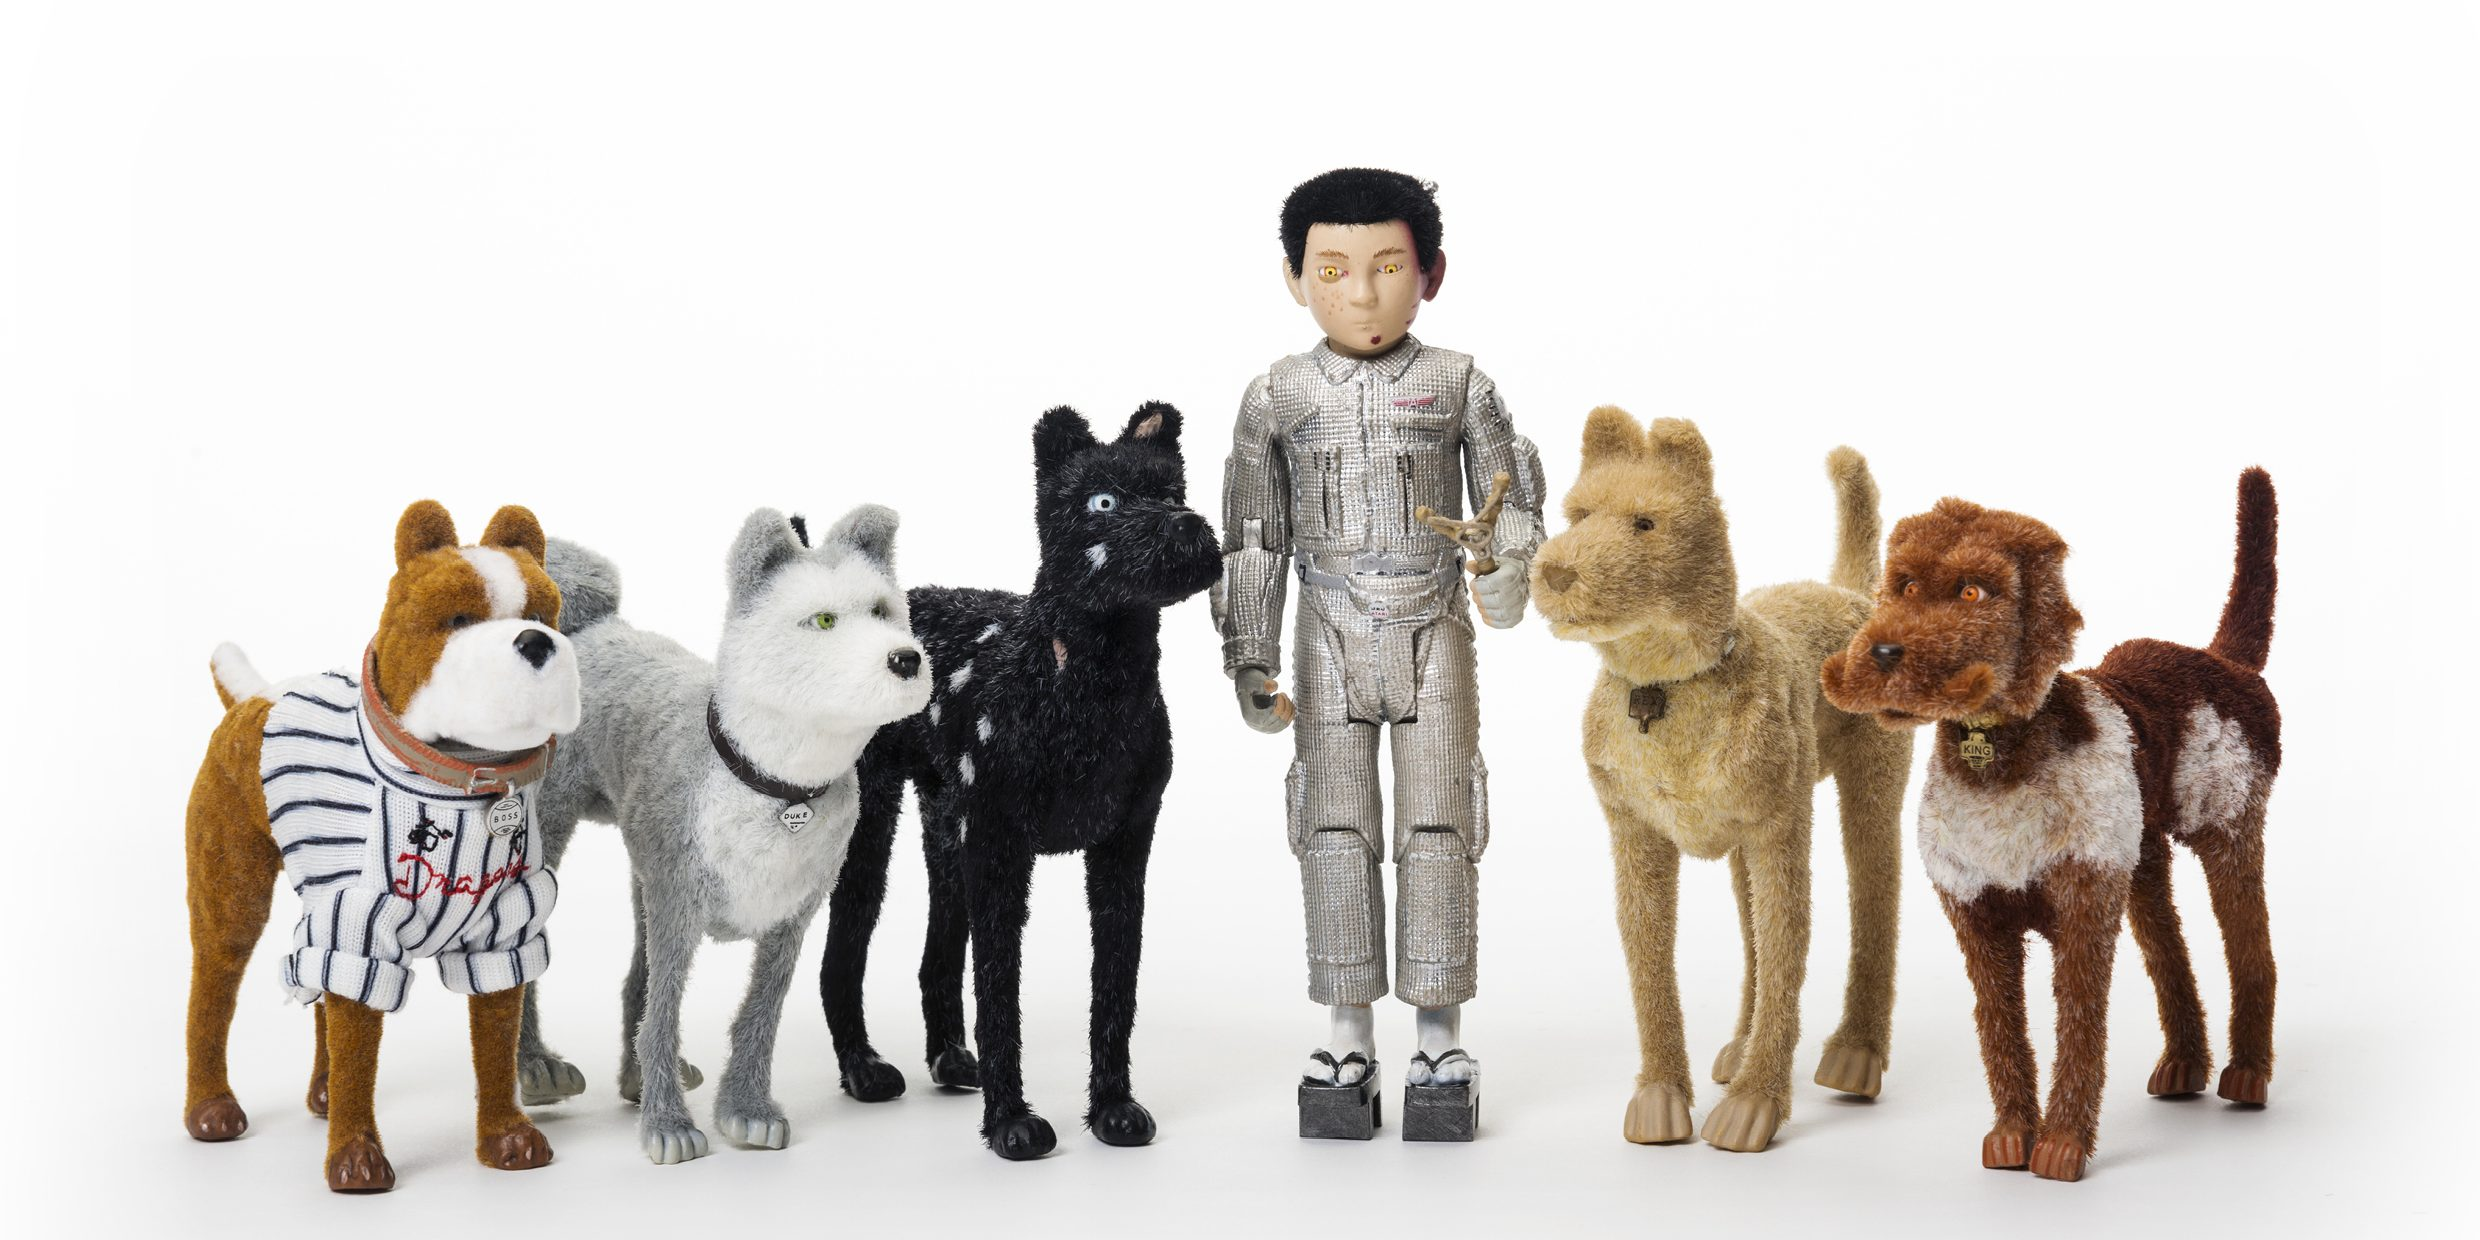 Collectible Isle Of Dogs Toys Released With Wes Anderson Film